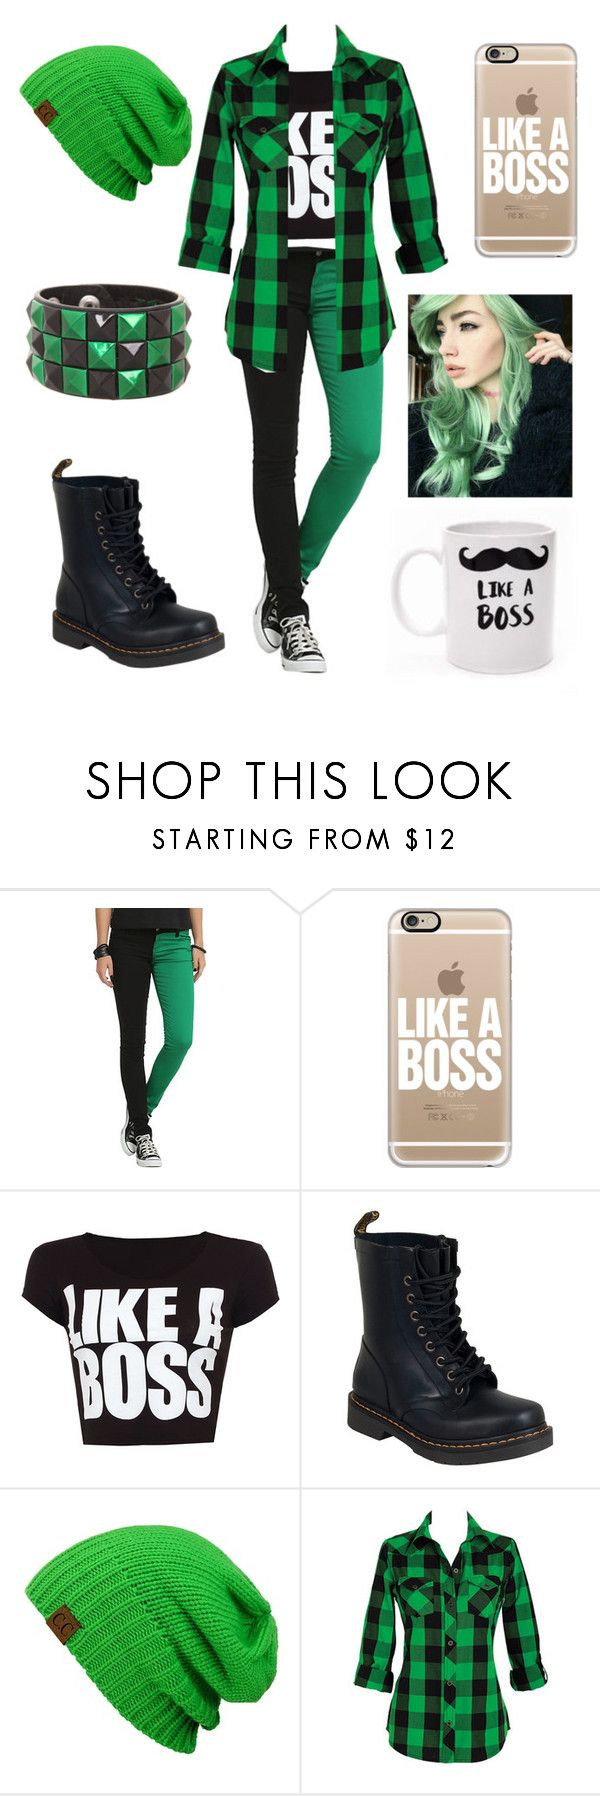 """""""Jacksepticeye girl outfit"""" by autogeek101 ❤ liked on Polyvore featuring Casetify, WearAll and Dr. Martens"""